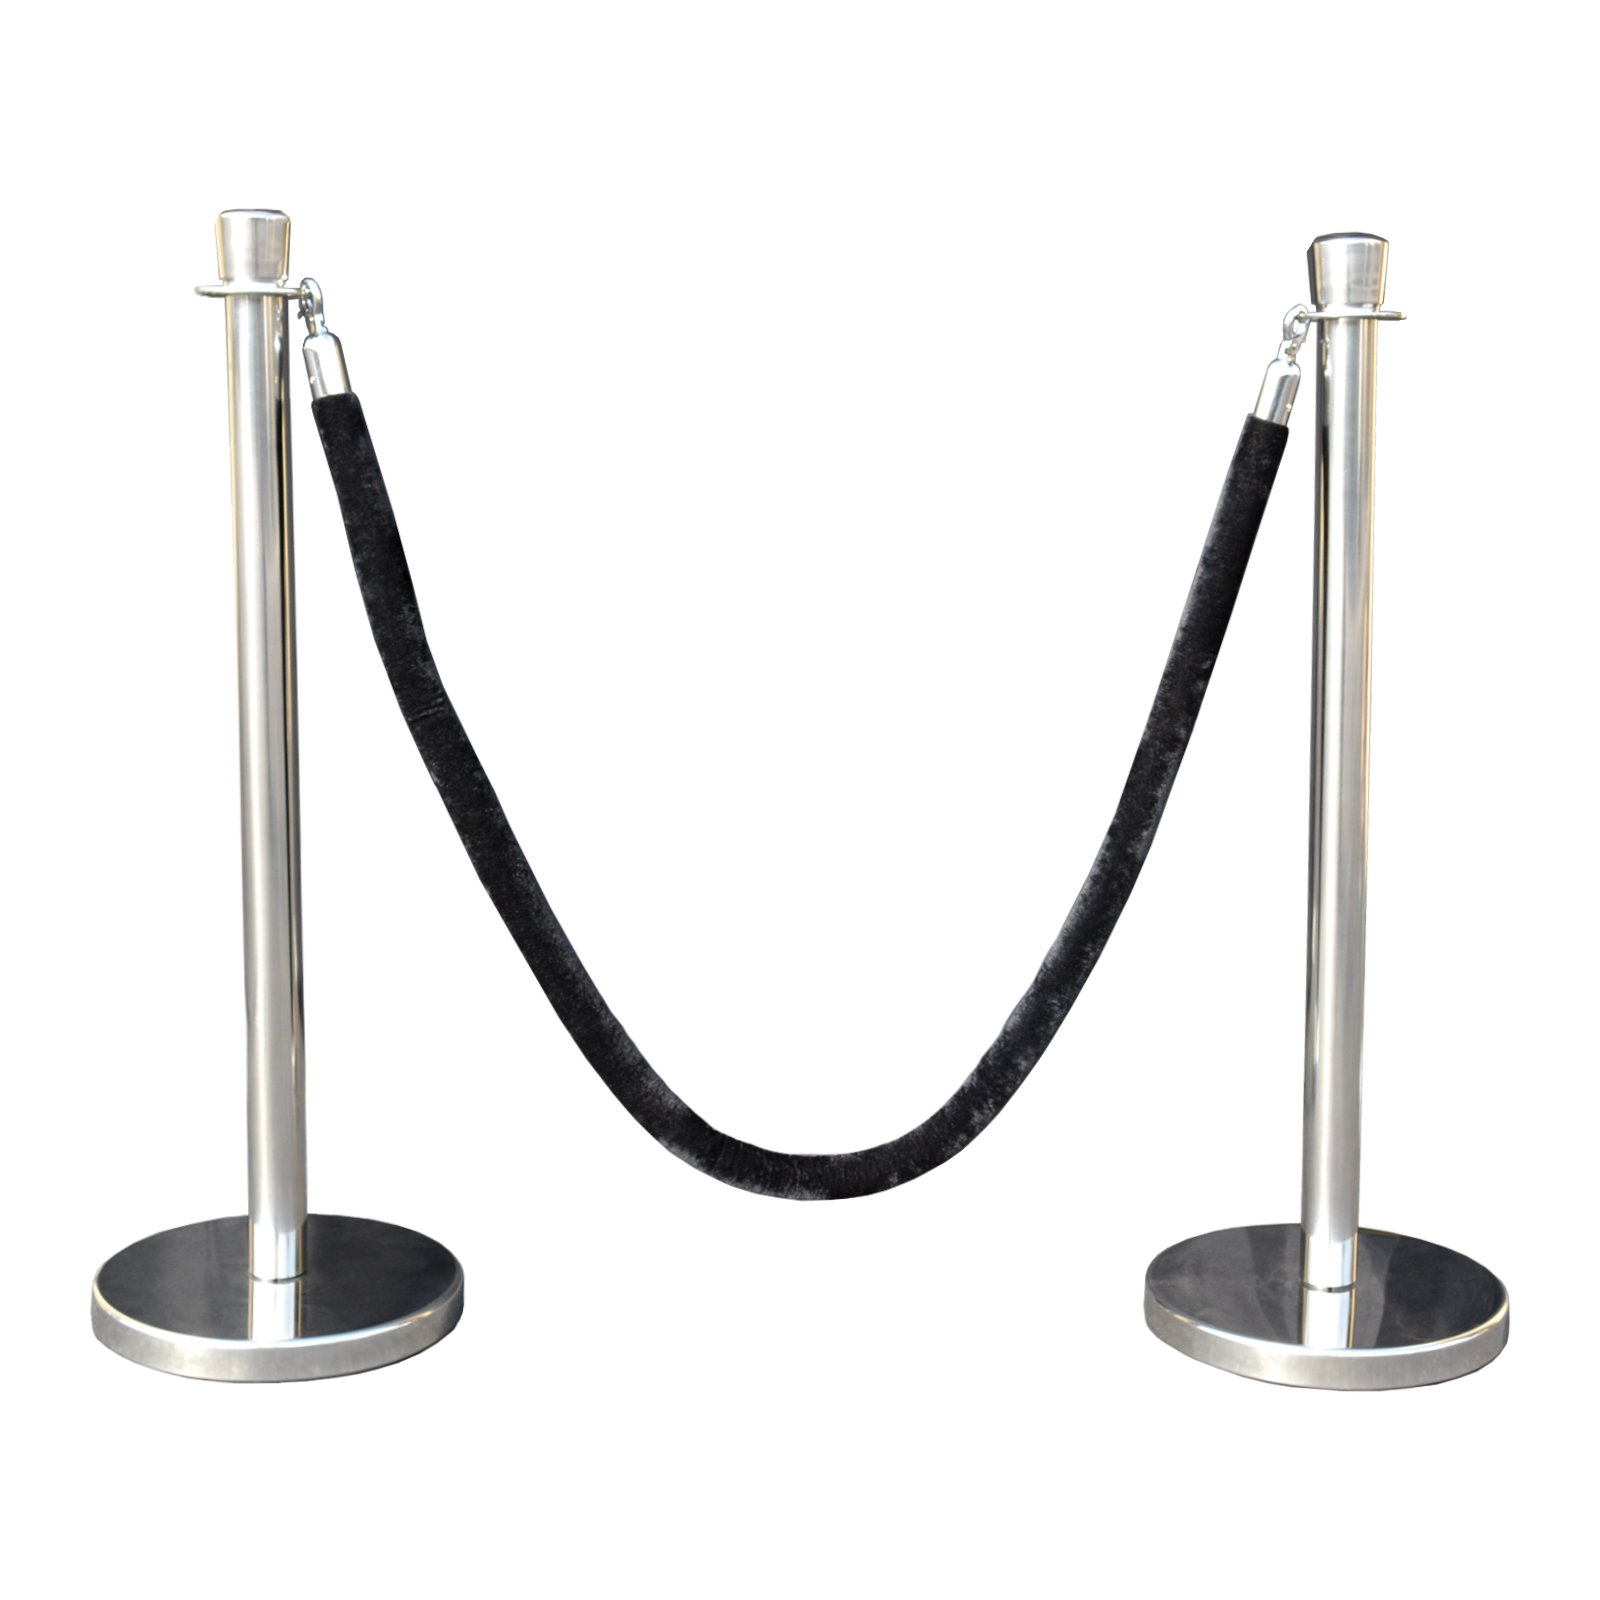 Rope Stanchion Set in 3 pcs, 72'' Black Velour Rope & Taper Top, Mirror Finished